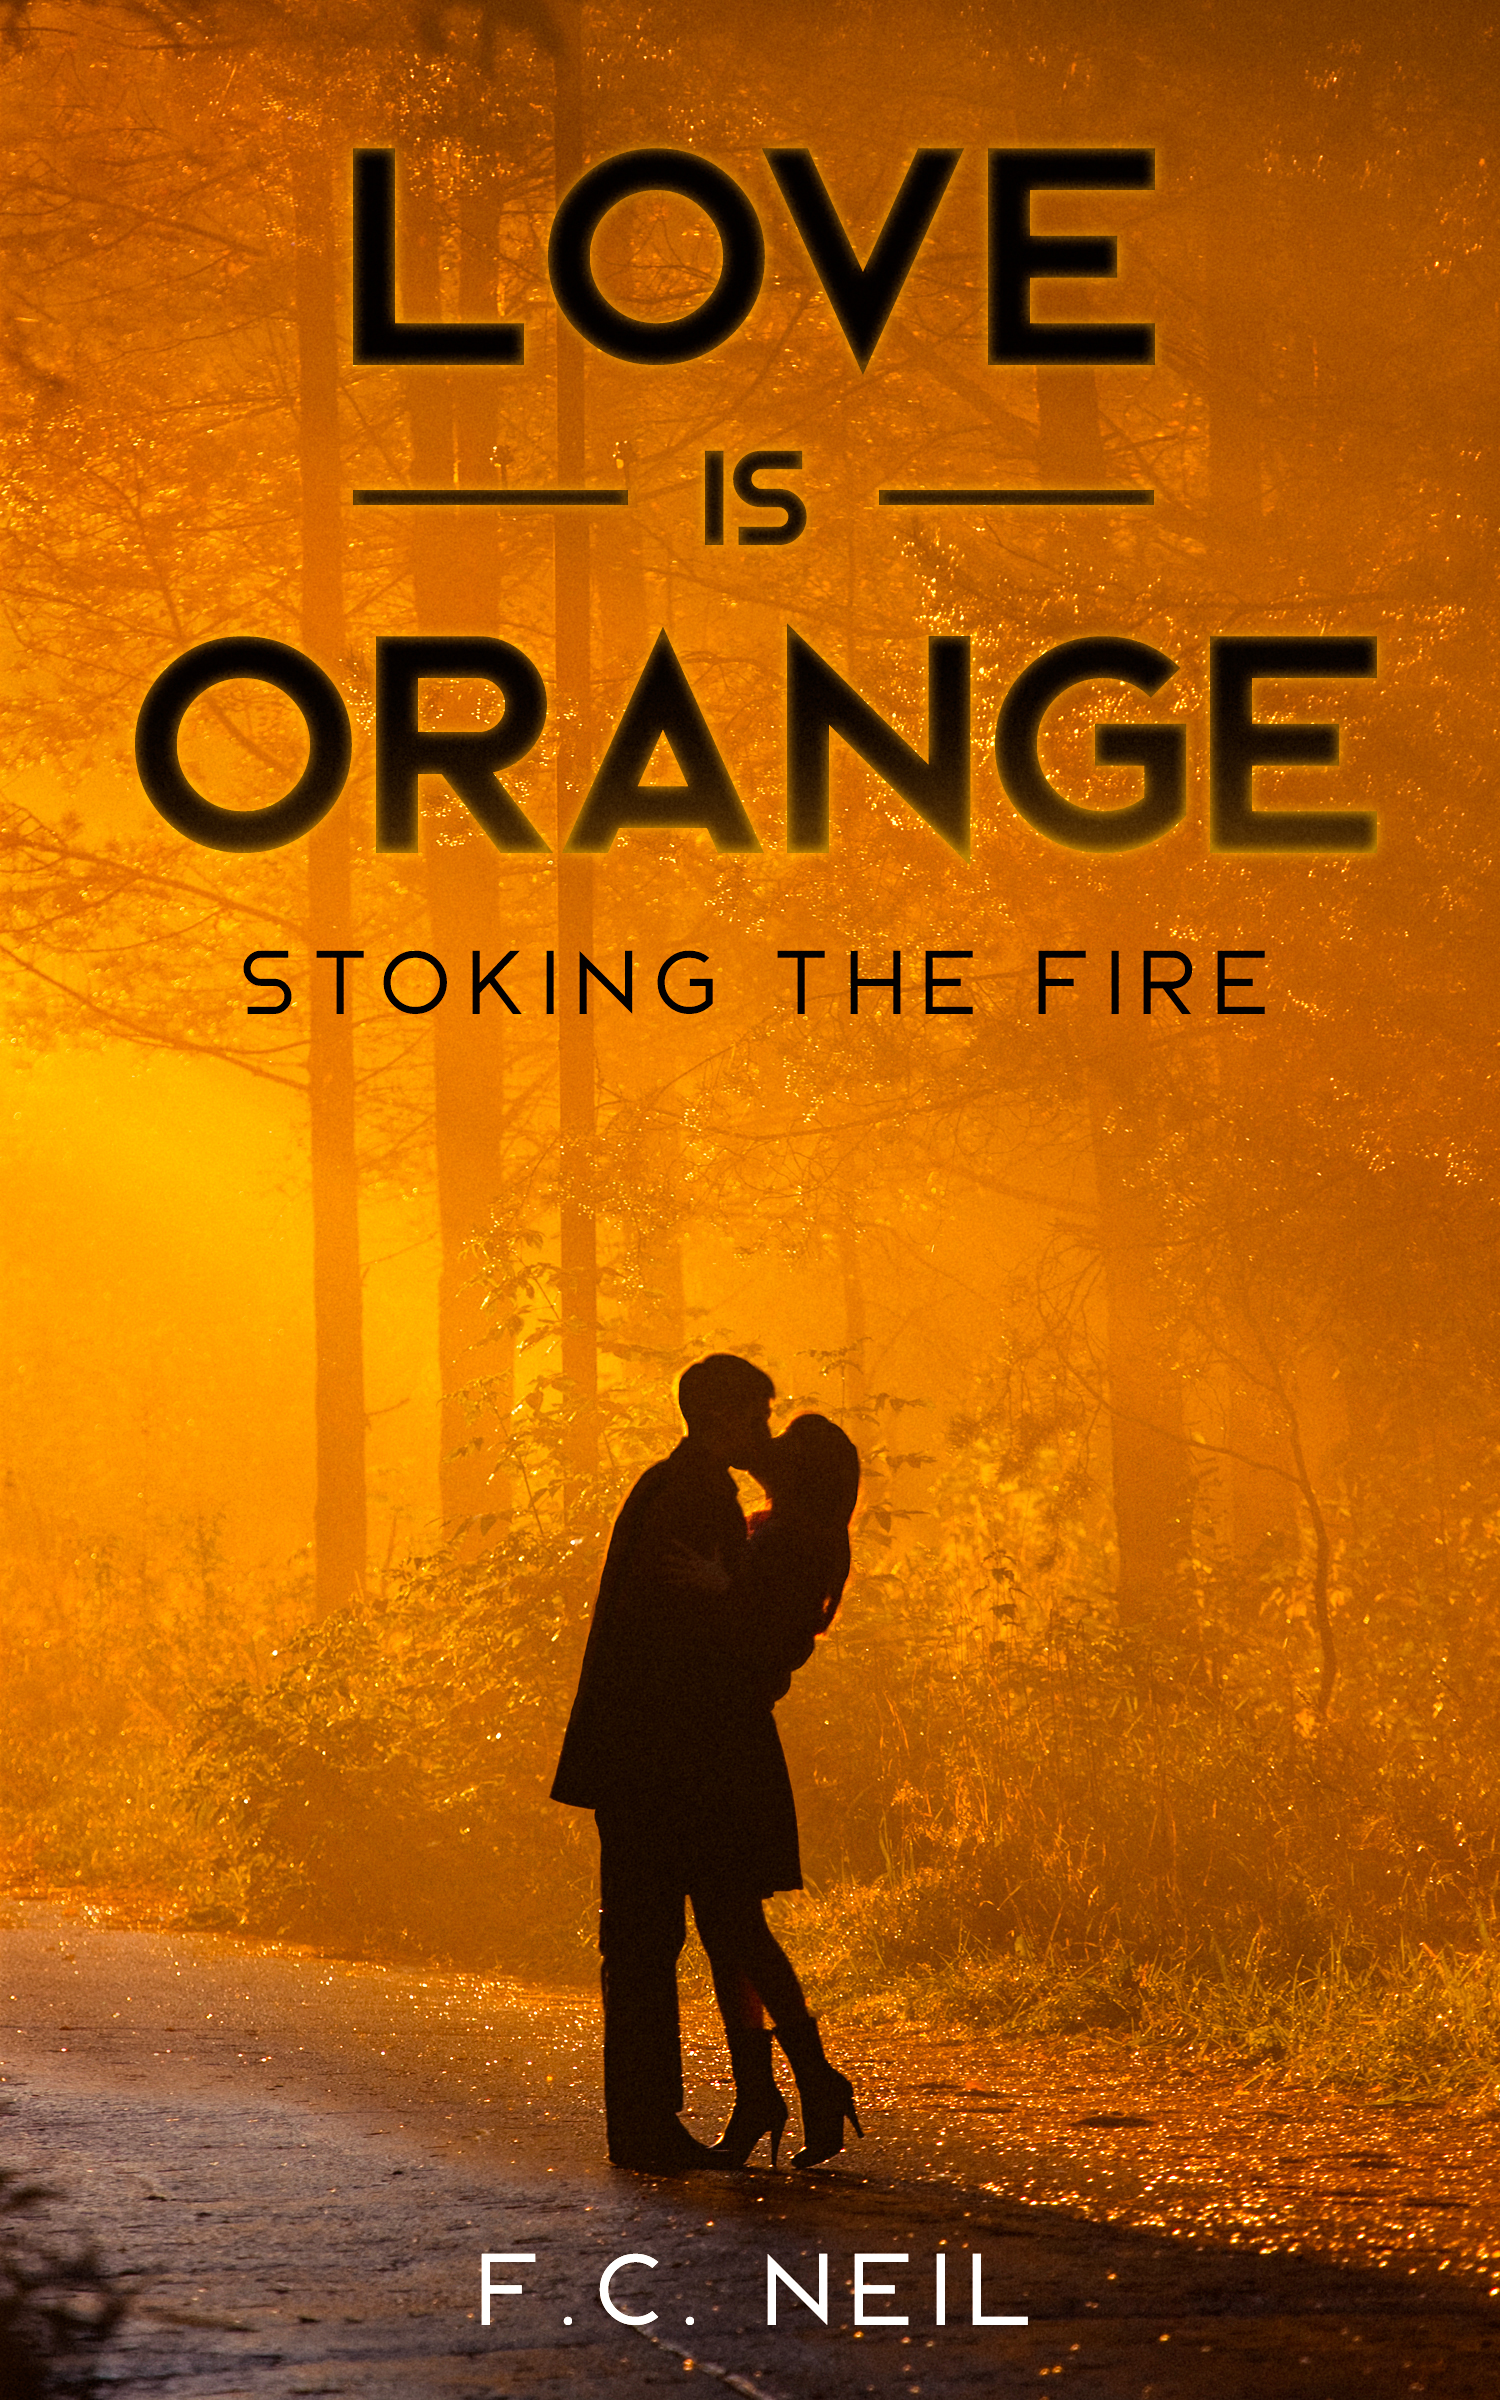 Love is Orange by F.C Neil - A Tale of Forbidden Youthful Love turned Mystical